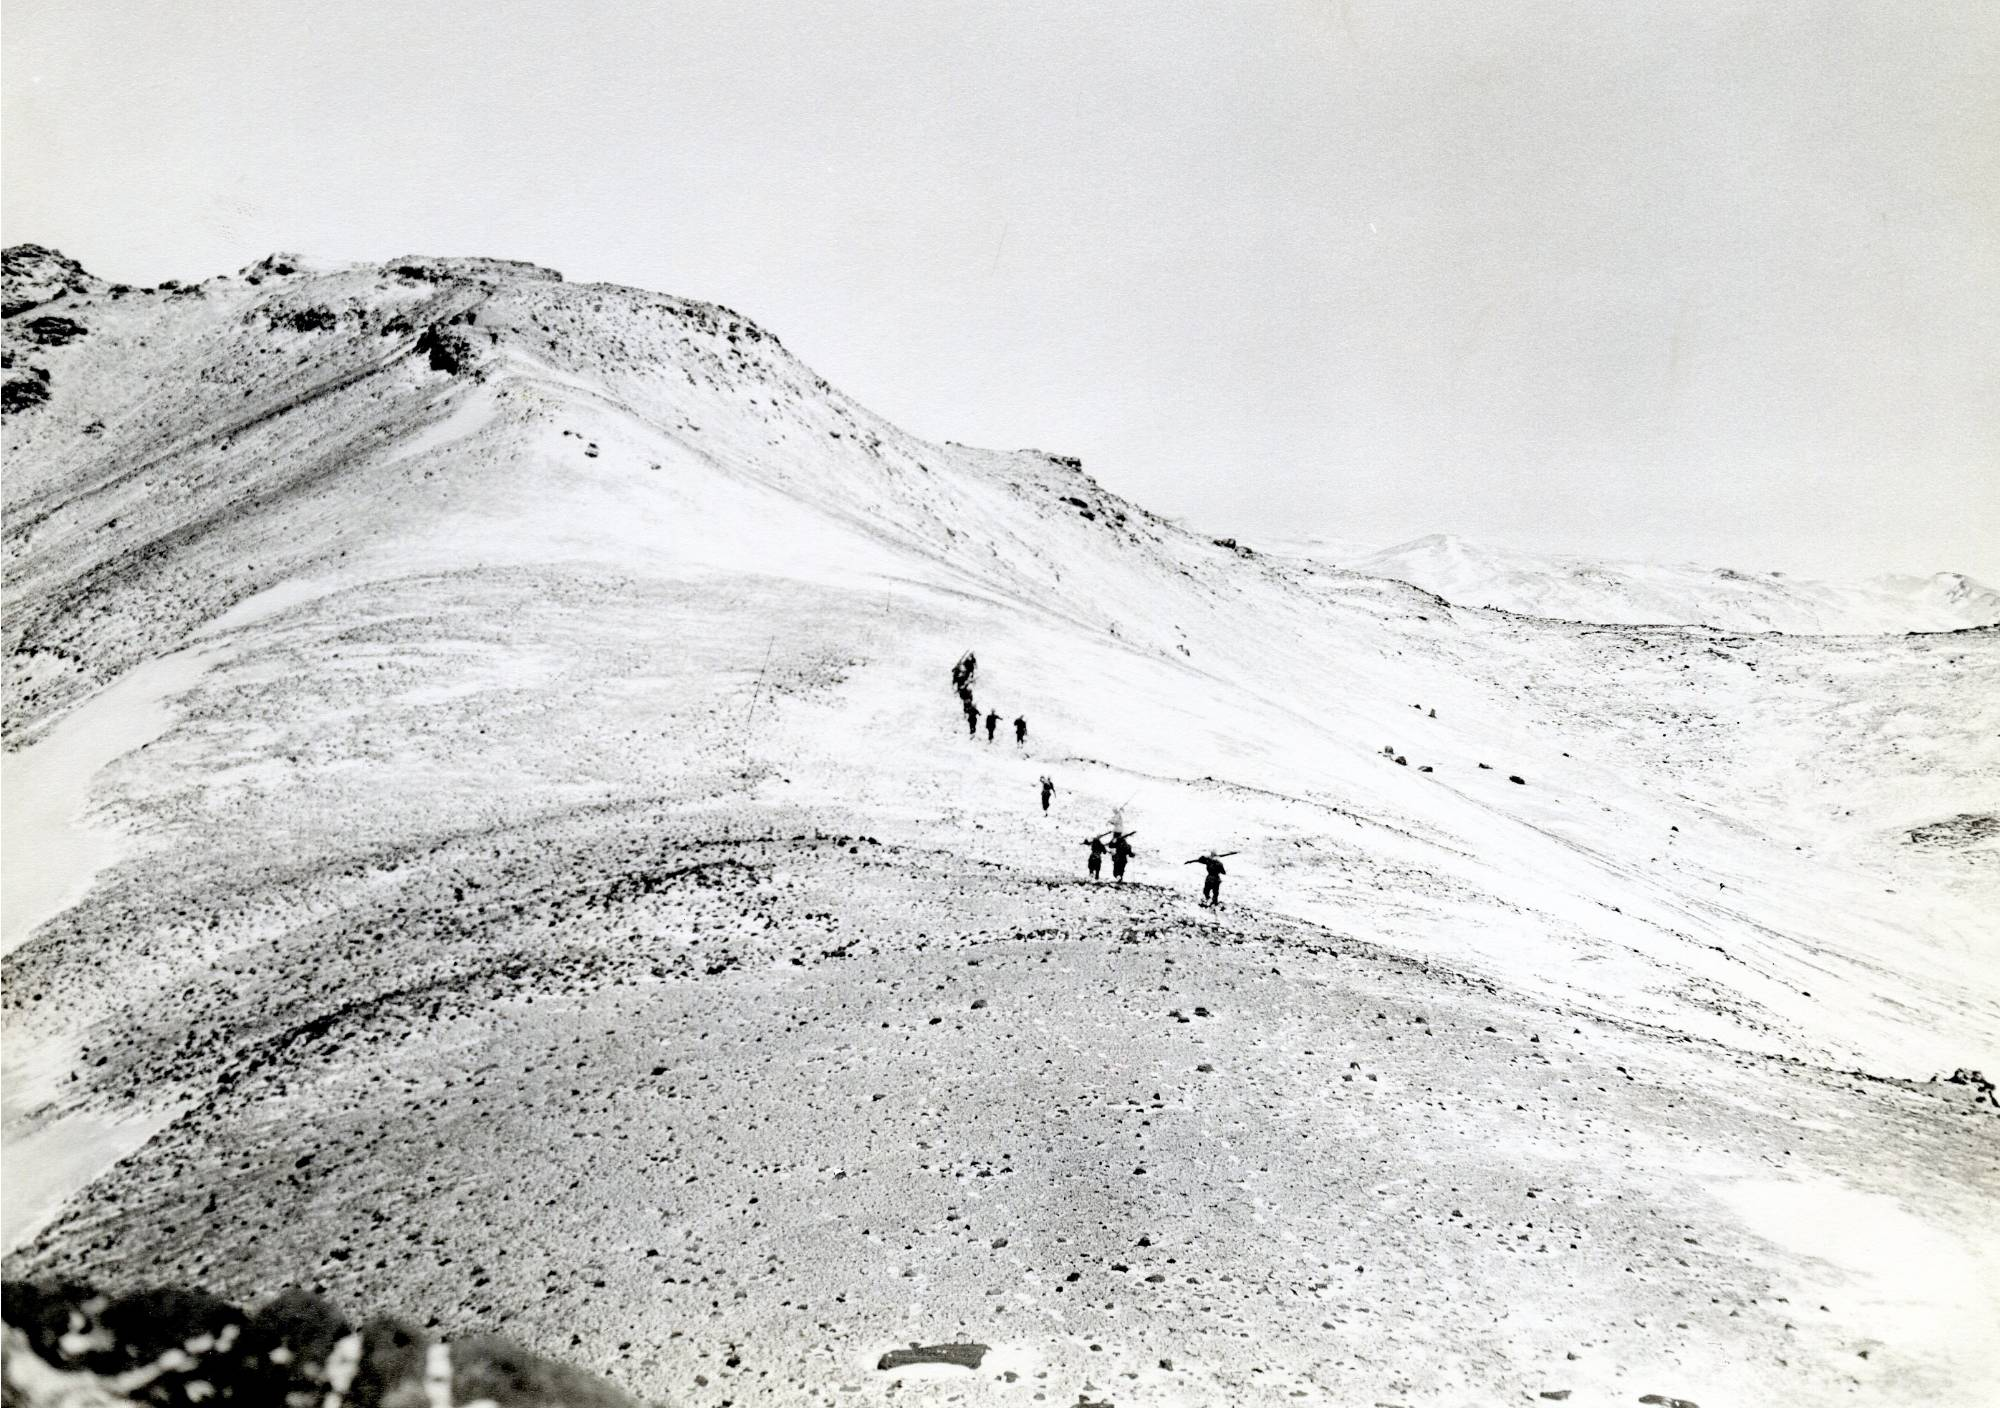 Iceland Mountains with troops martching across